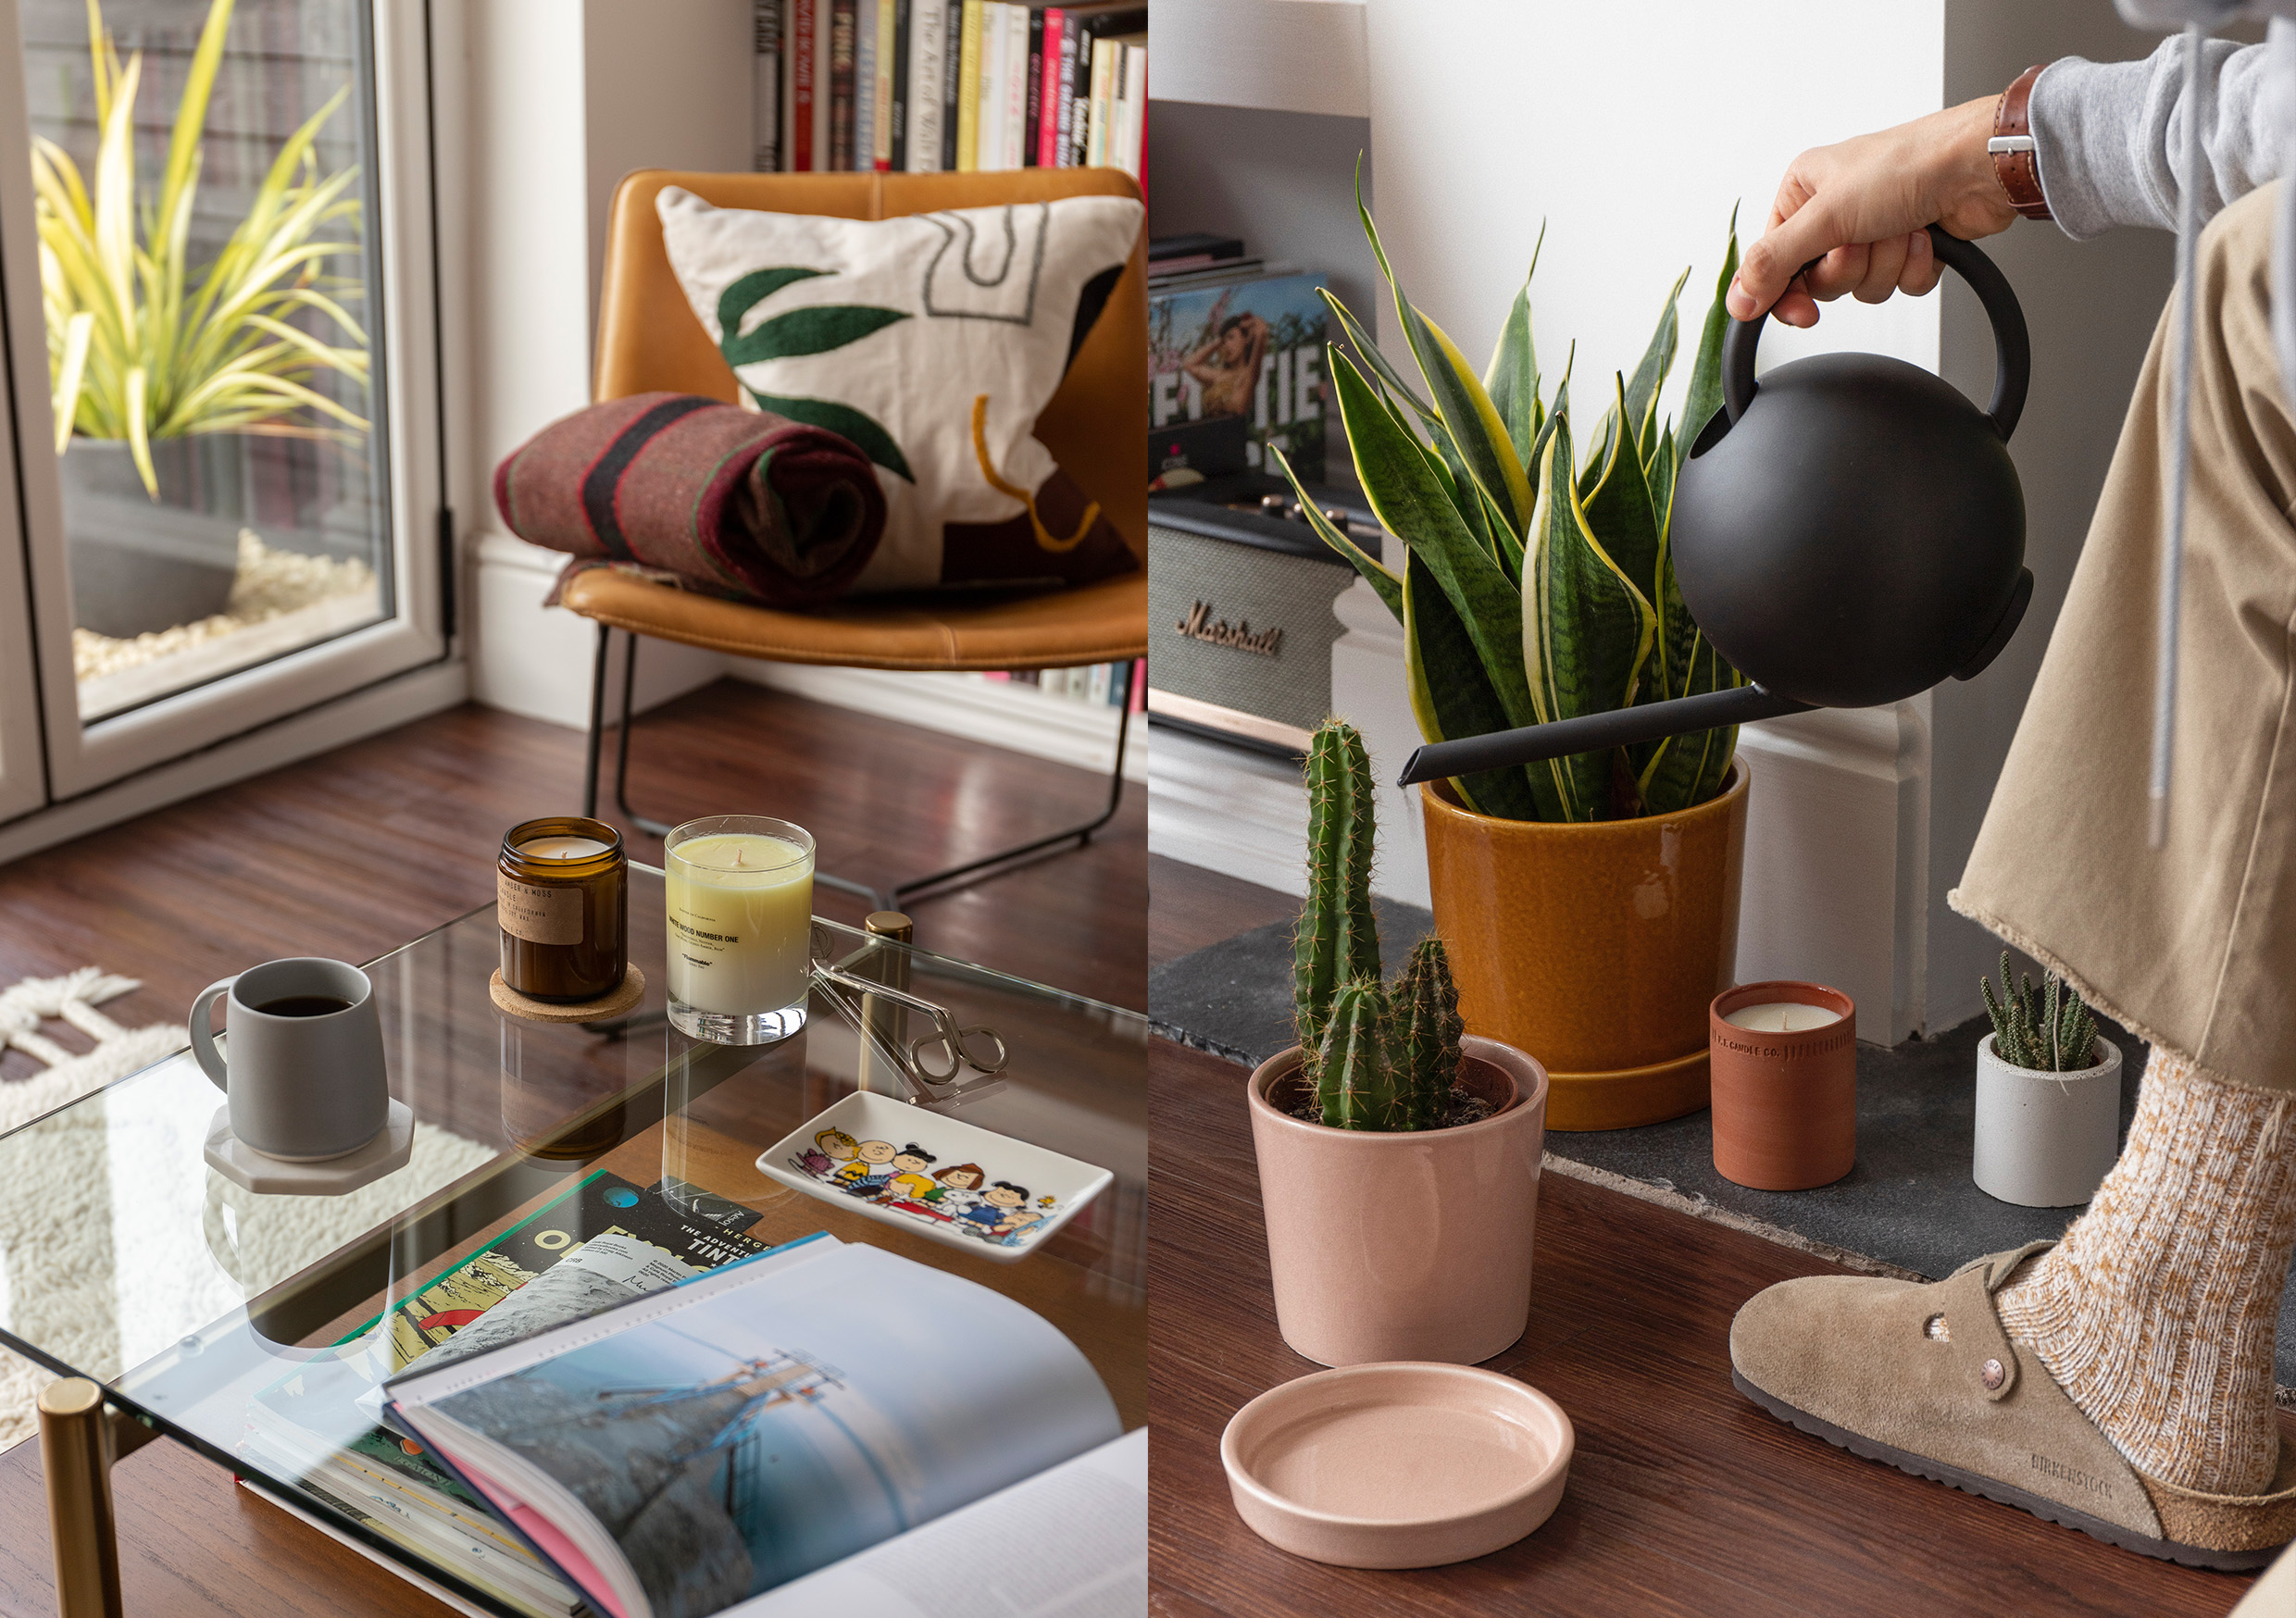 HIP Living - Living Room - Candles - Plant Pots - Books - Chair